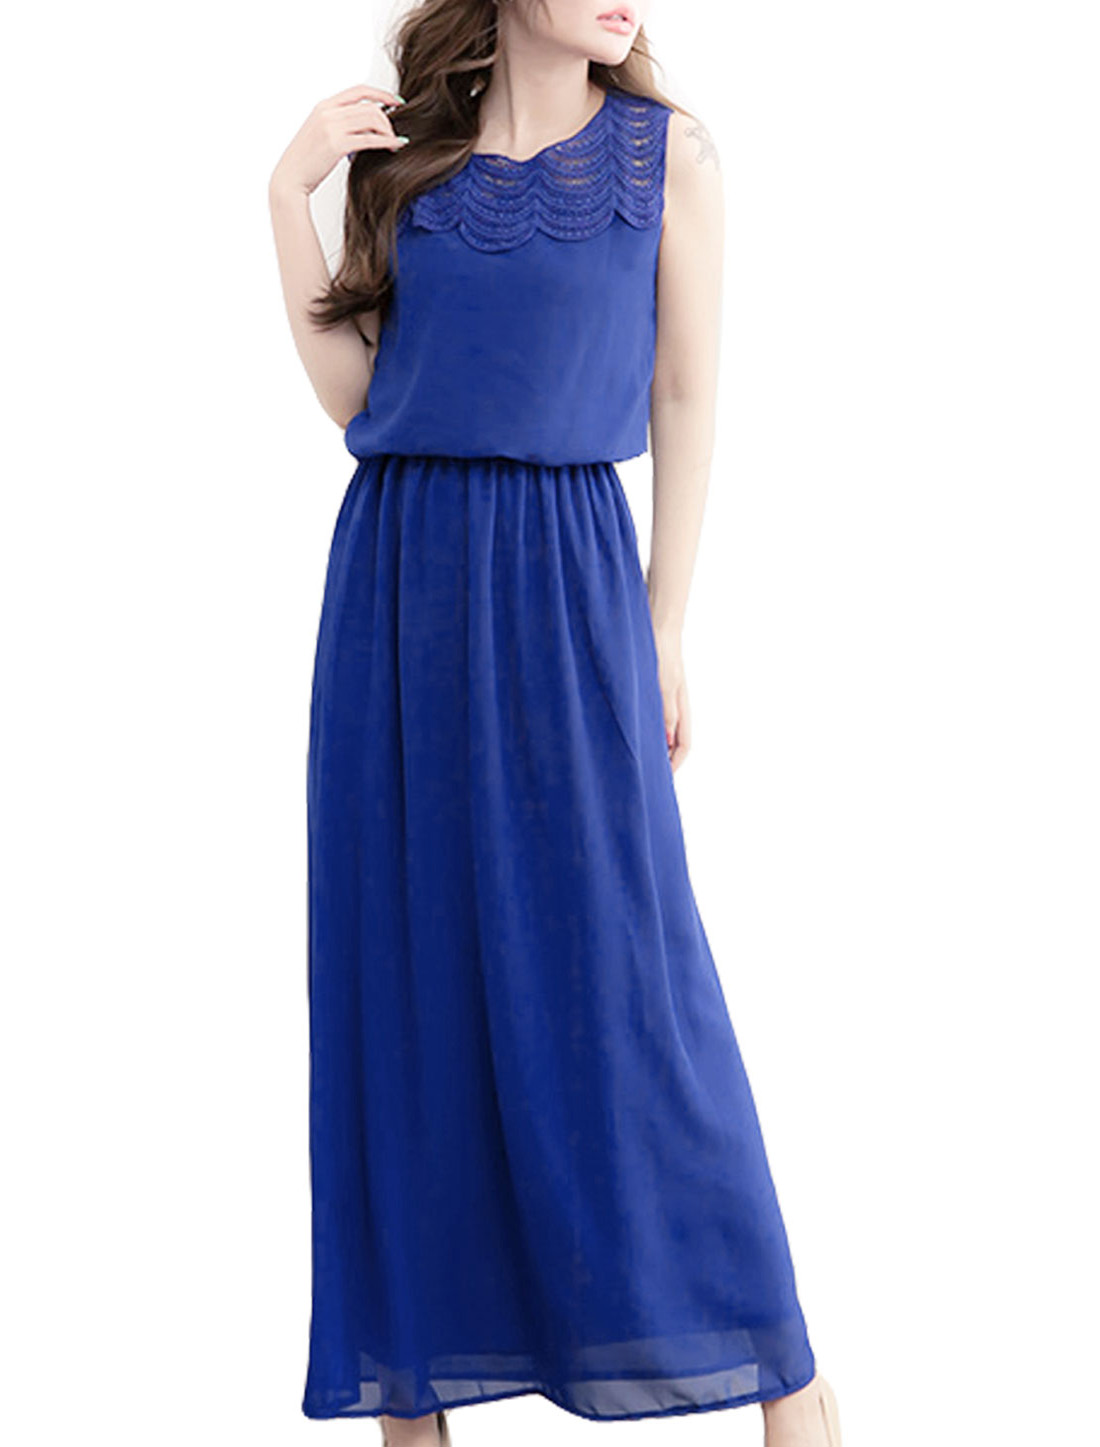 Dark Blue Crochet Collar Elastic Waist Full Length Chiffon Dress XS for Women